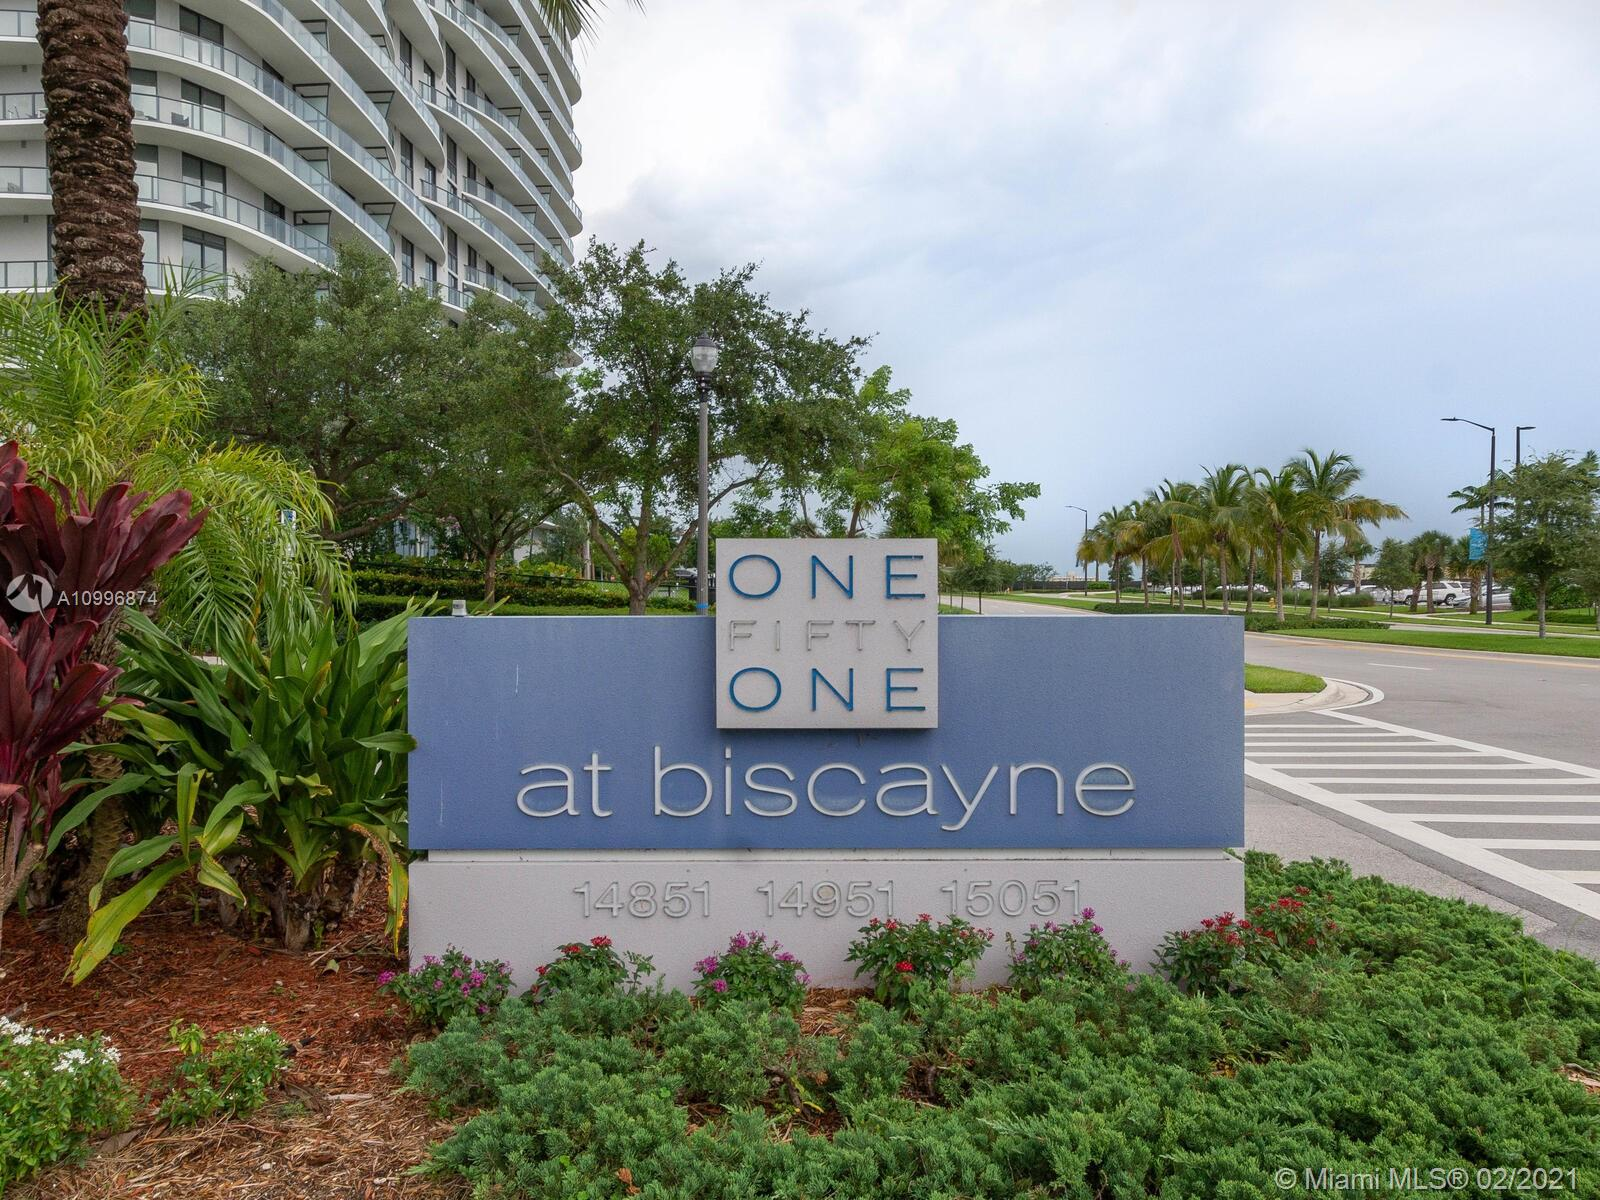 One Fifty One At Biscayne #1907 - 14951 Royal Oaks Lane #1907, North Miami, FL 33181